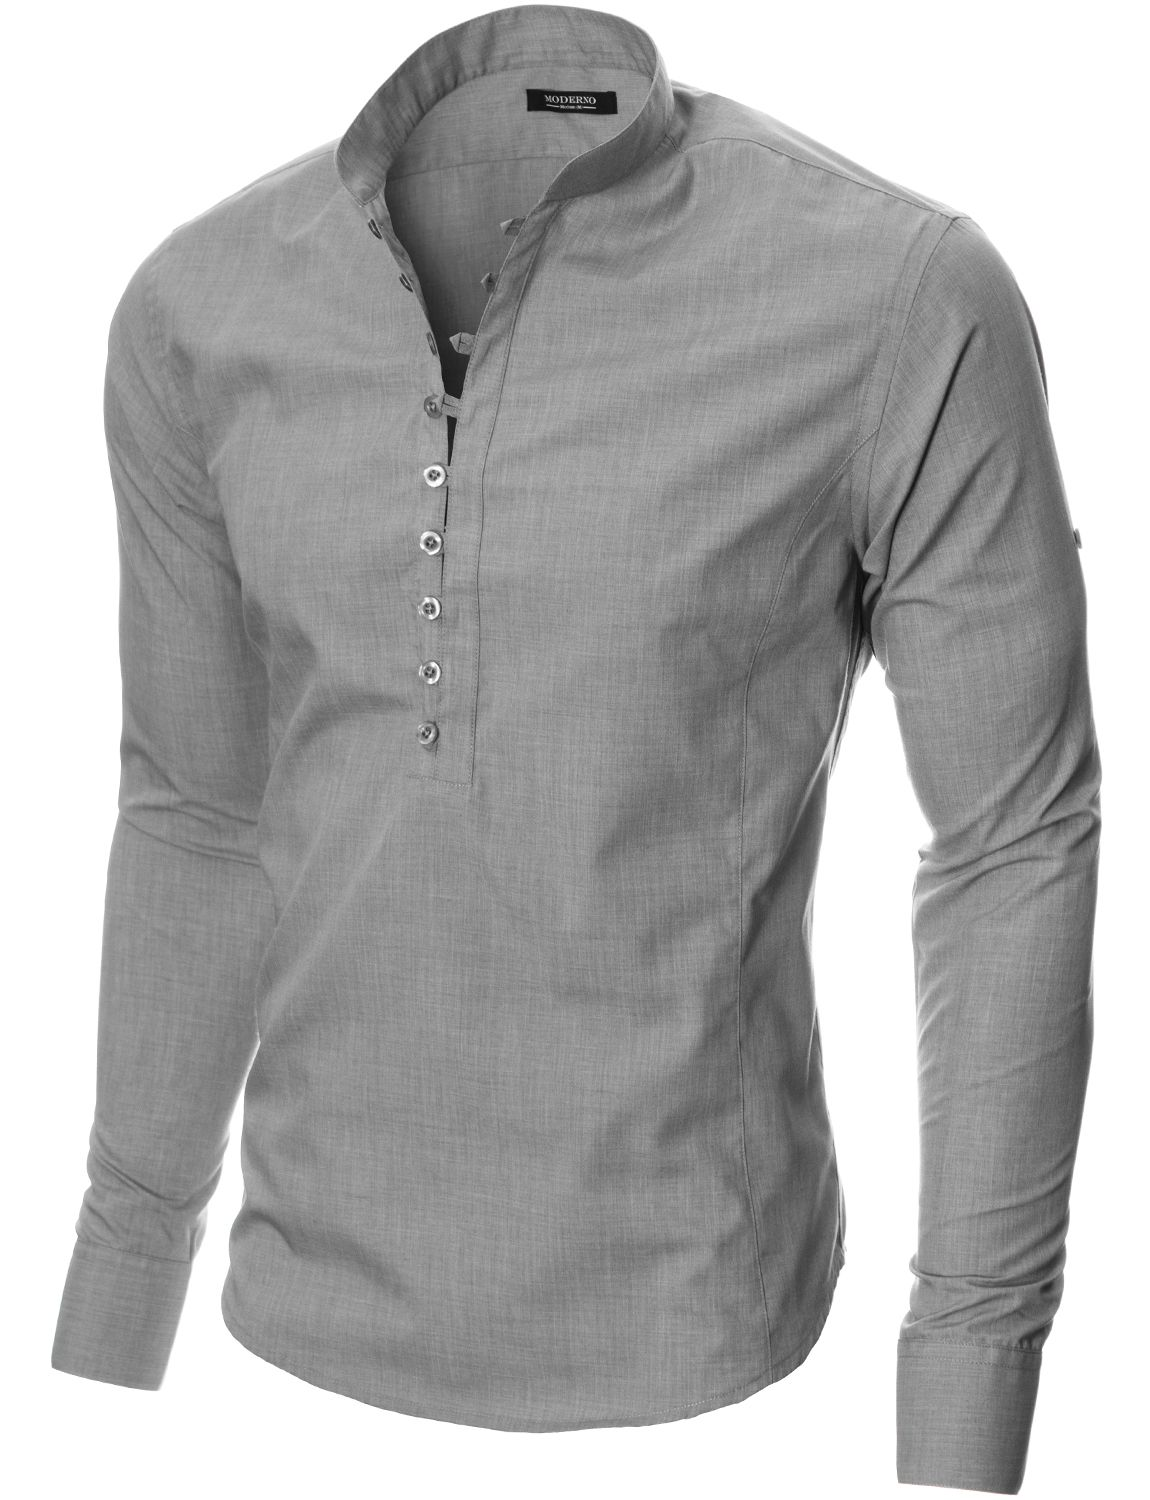 a9f0a896b Mens long sleeve mao collar casual shirt charcoal (MOD1431LS) in ...